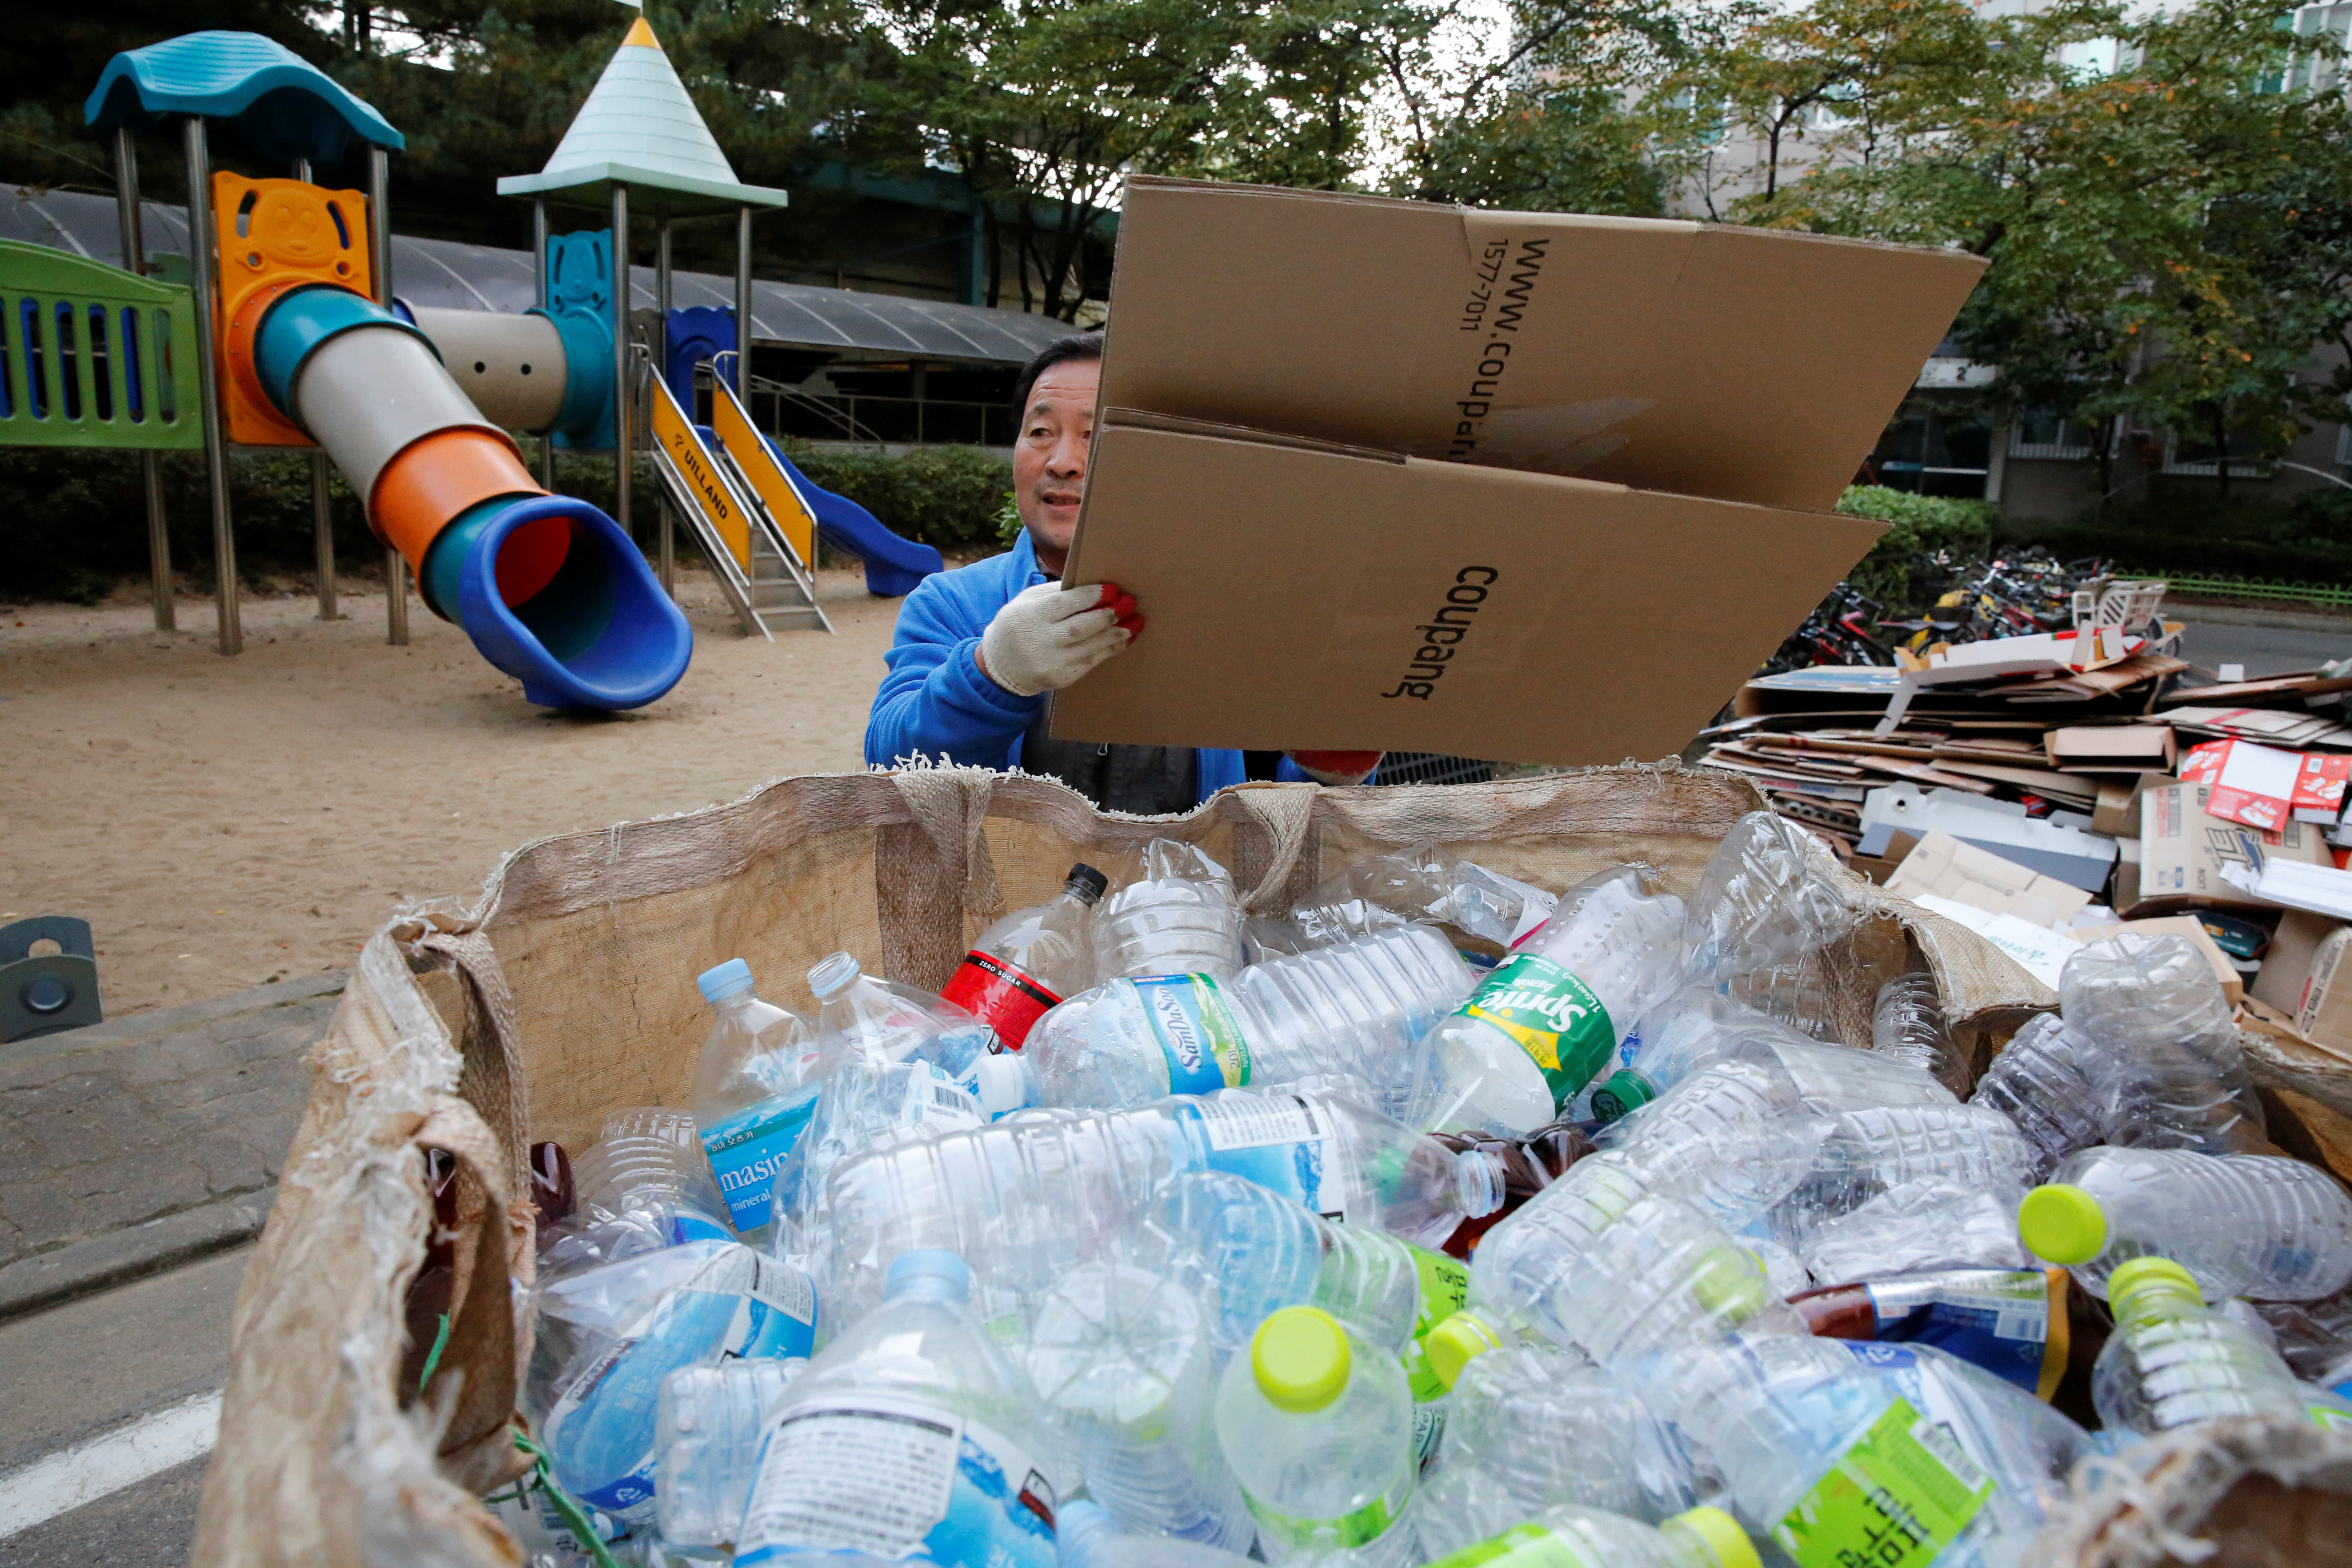 Lee Yong-gi, owner of a recycling facility, collects recycling garbage at an apartment area in Seoul, South Korea, October 23, 2020. Picture taken October 23, 2020.    REUTERS/Heo Ran - RC2DXJ912670